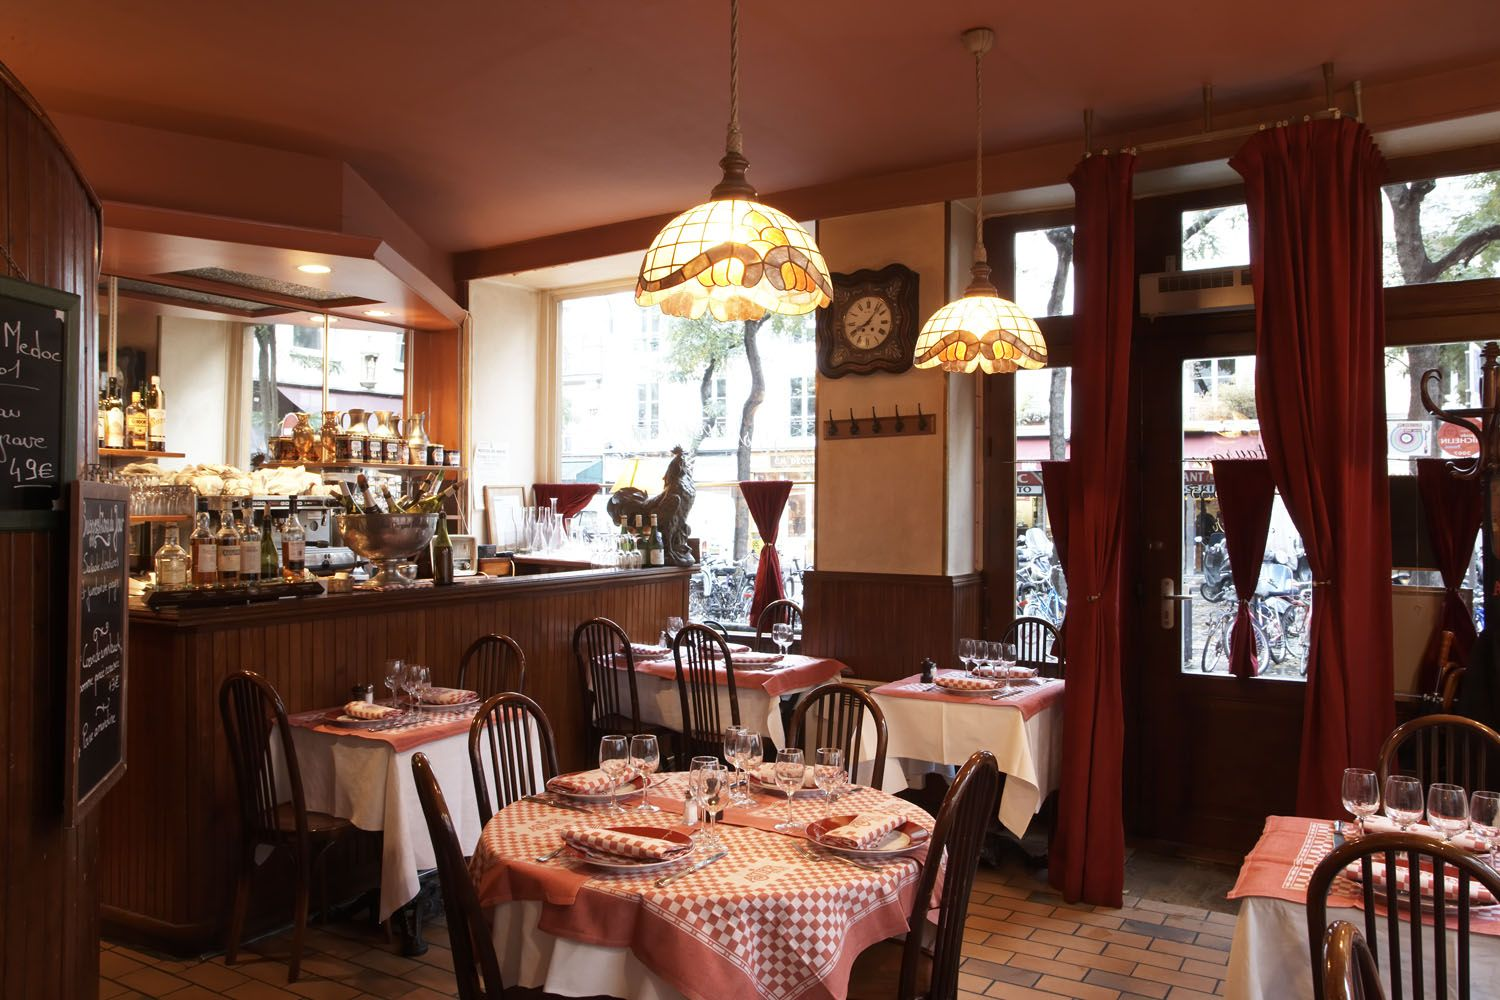 Astier Restaurant Paris 11 A Wonderful Old Fashioned French Restaurant In A Not Very Fashionable Part Of Paris W Paris Restaurants Paris Bistro Restaurant